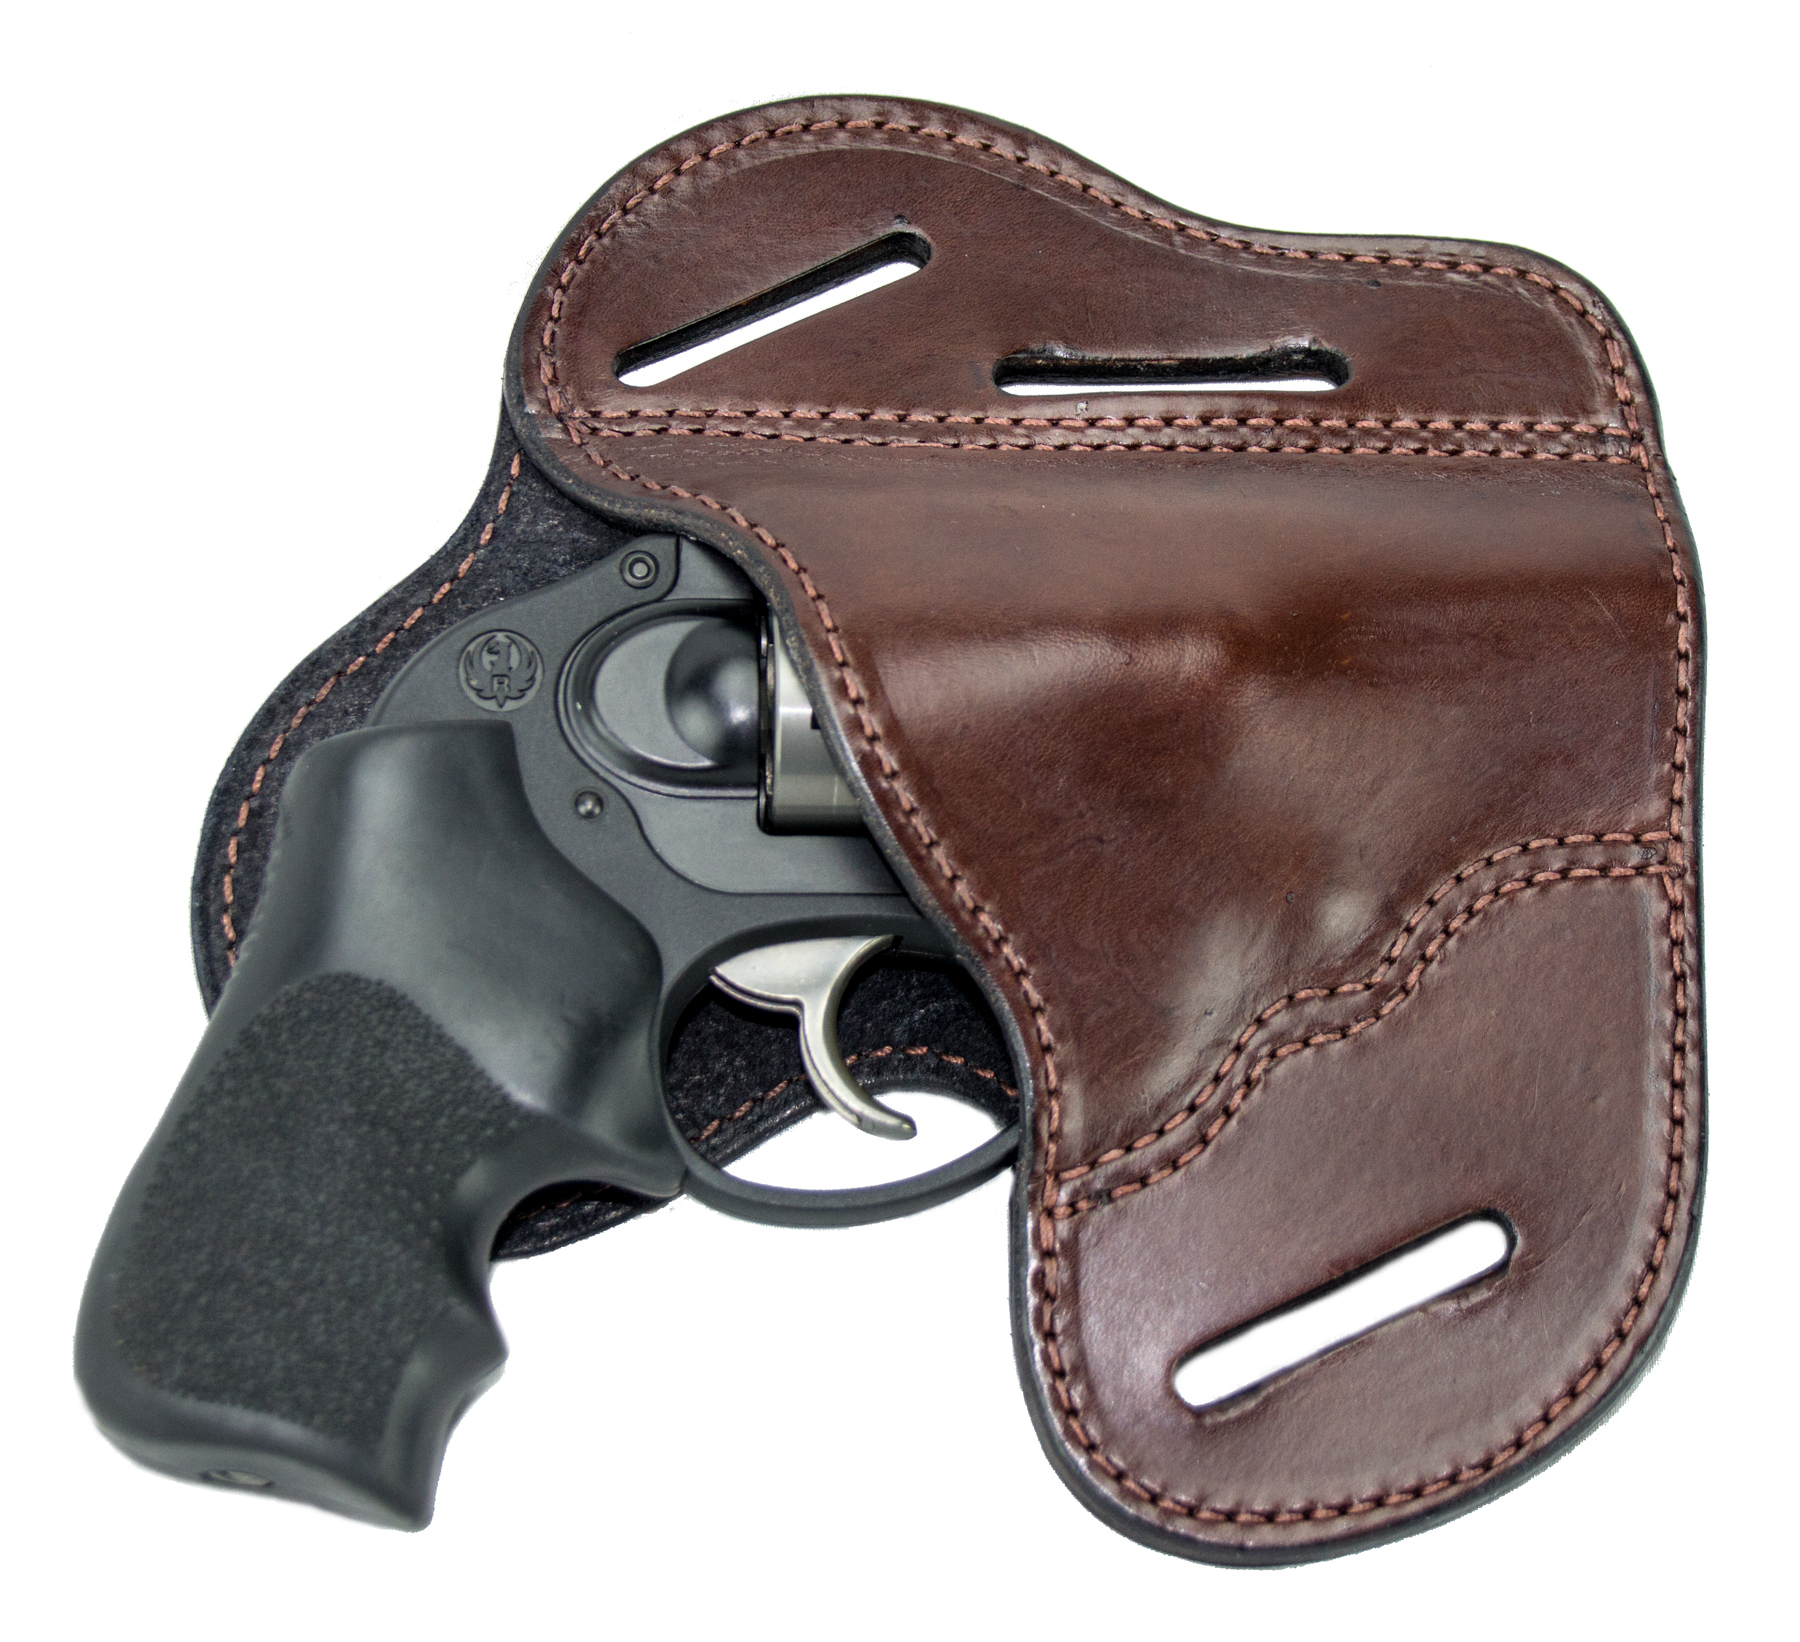 The Ultimate Leather Gun Holster - BROWN 3 Slot Pancake Style Belt Holster Fits J Frame / Revolver Style Handguns